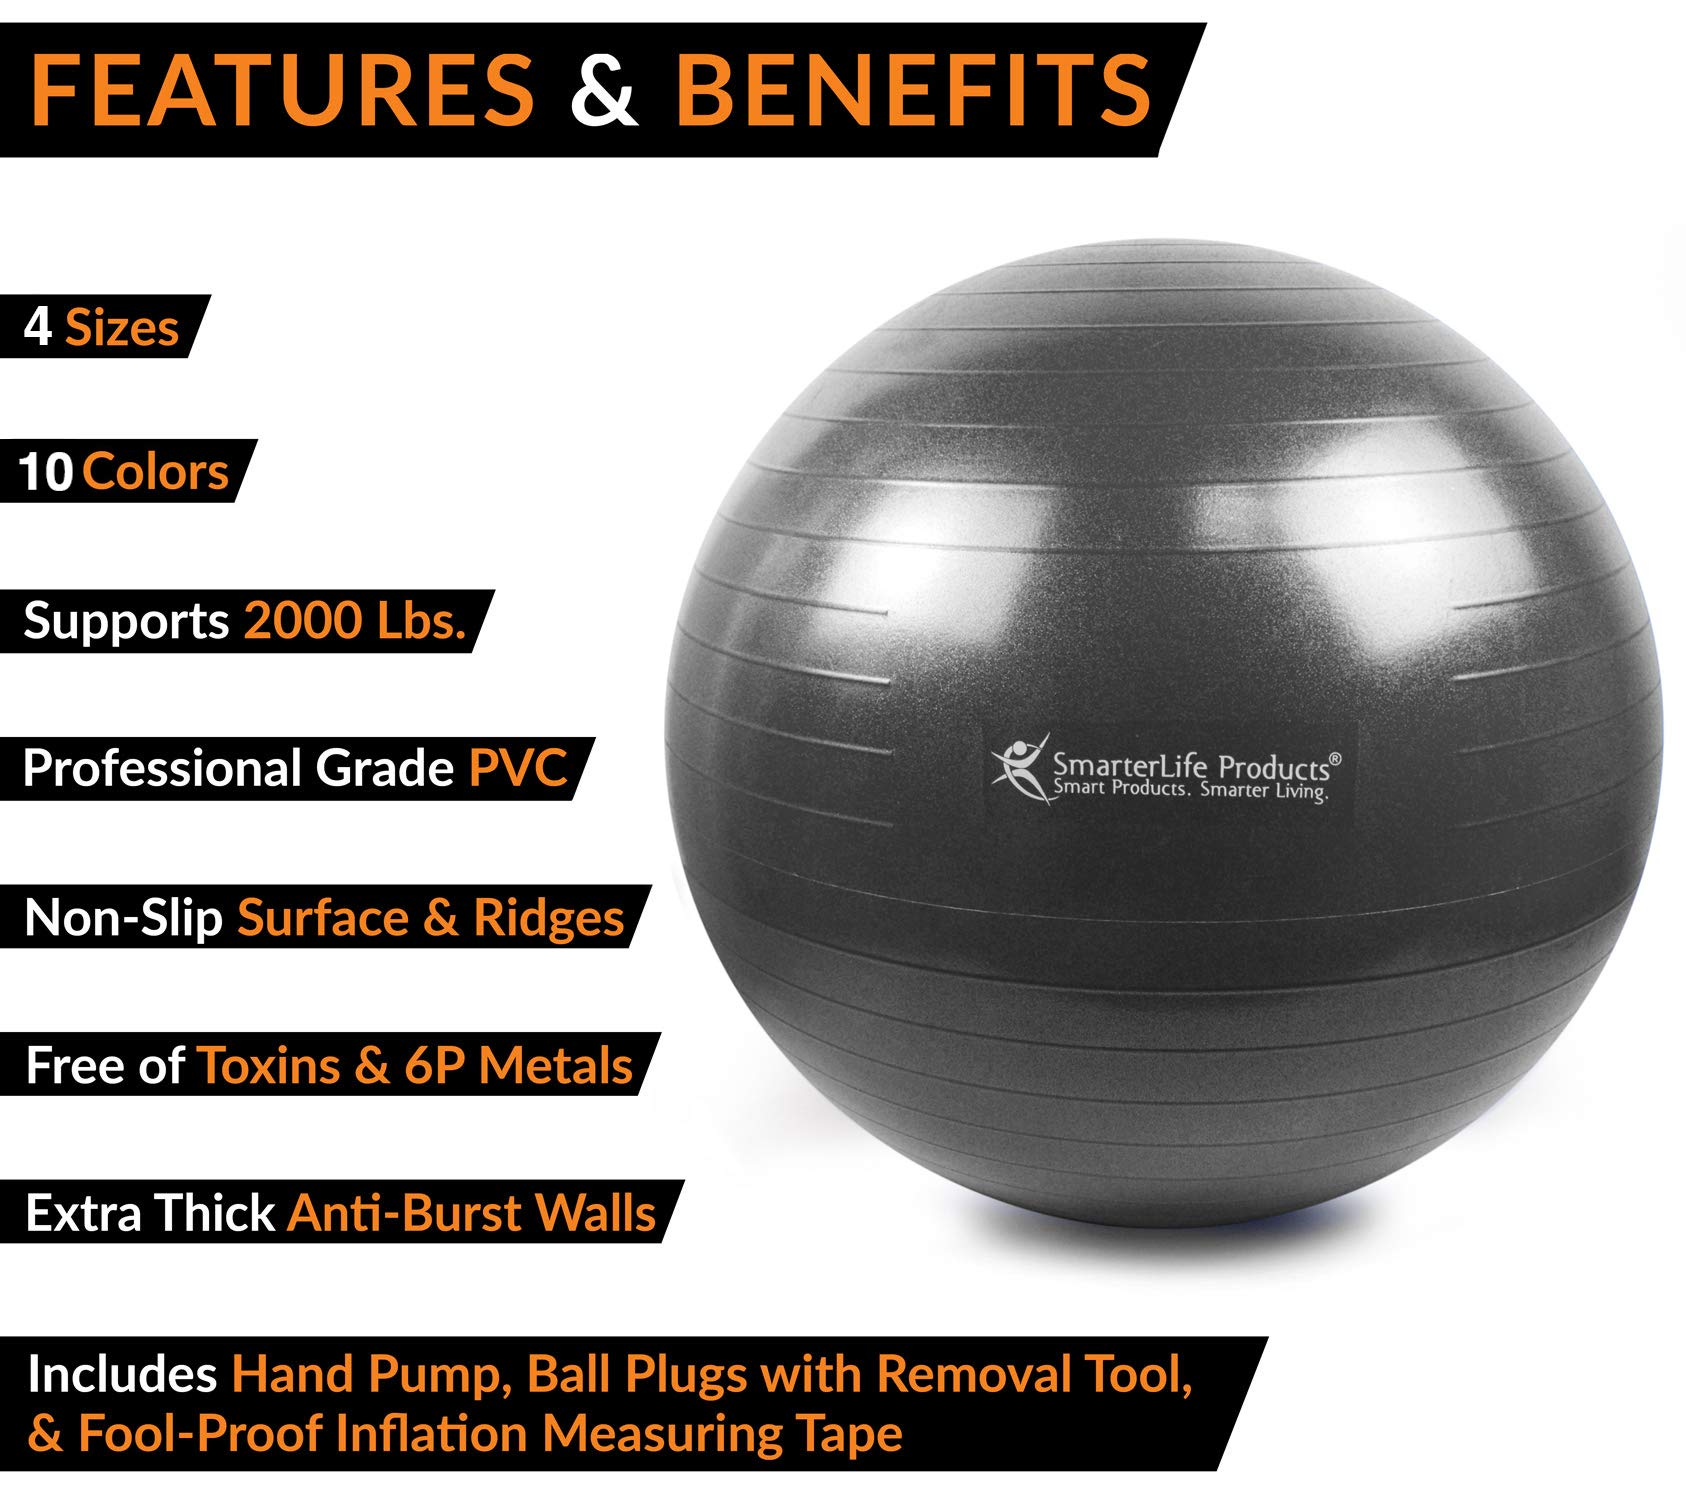 Exercise Ball for Yoga, Balance, Stability from SmarterLife - Fitness, Pilates, Birthing, Therapy, Office Ball Chair, Classroom Flexible Seating - Anti Burst, Non Slip + Workout Guide (Black, 65cm) by SmarterLife Products (Image #2)